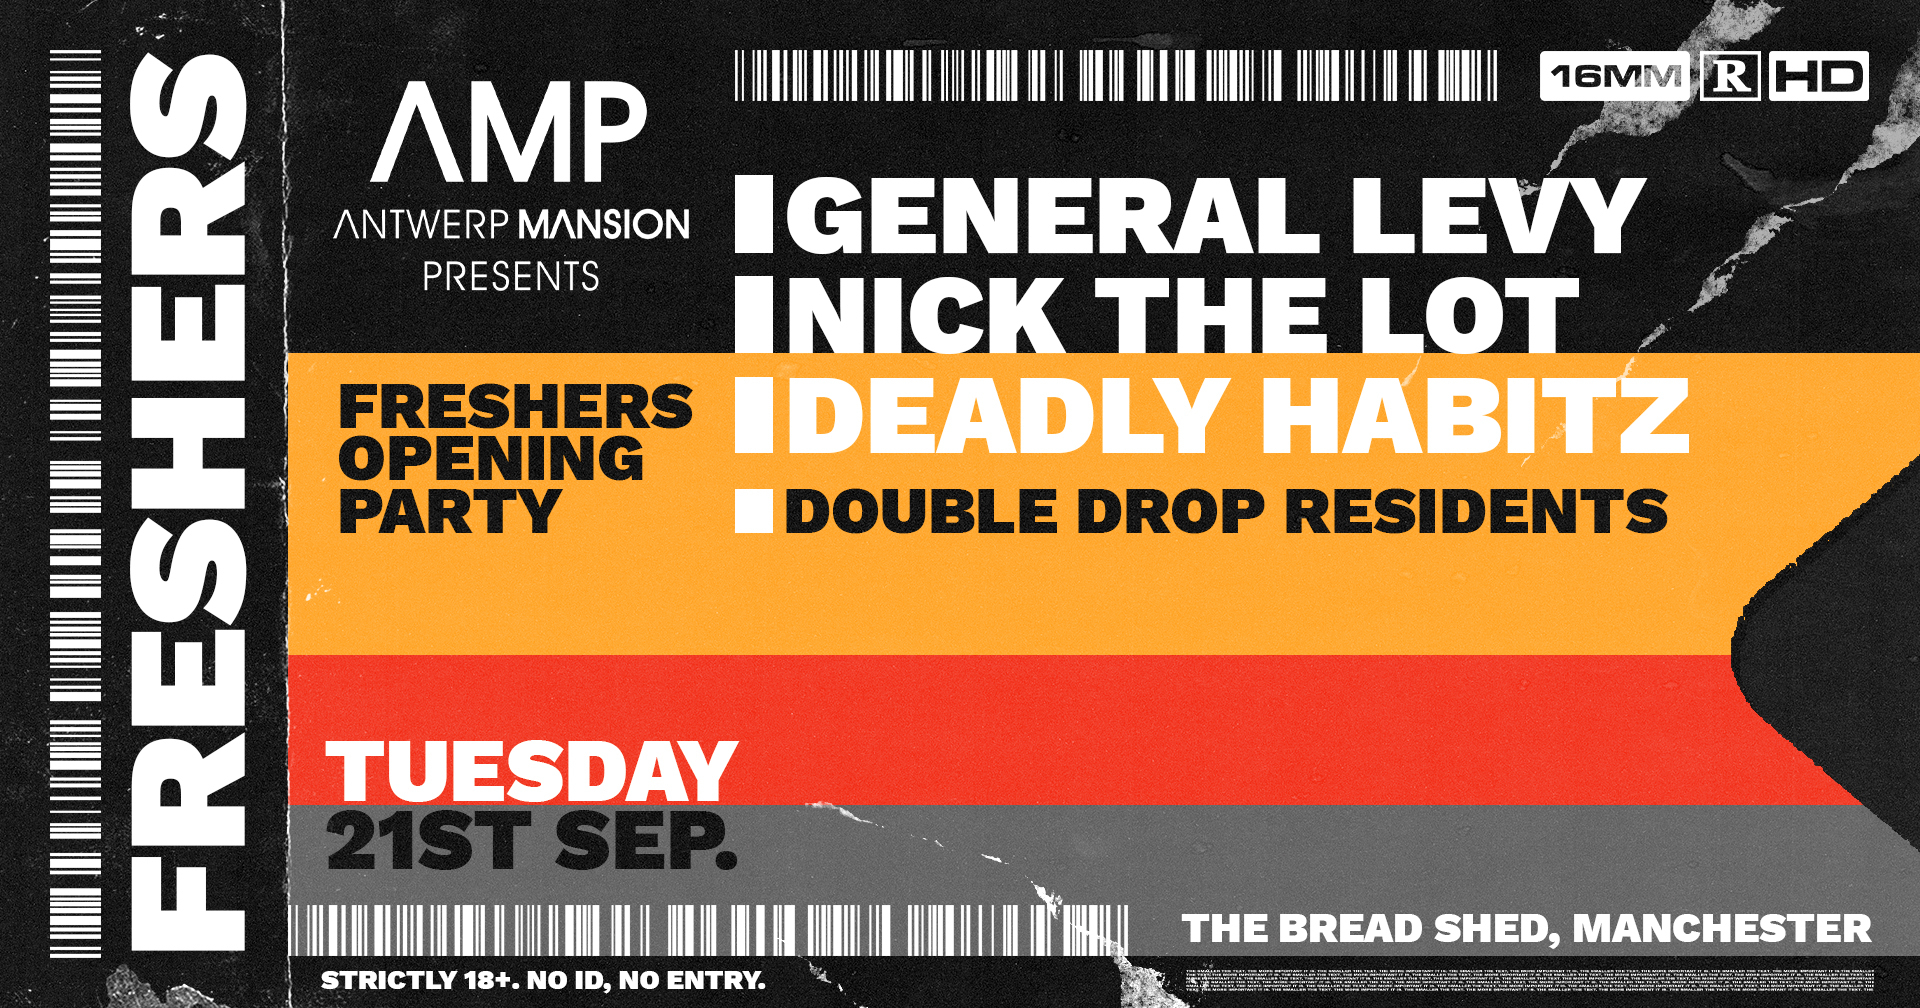 1328973_2_amp-freshers-opening-party-wgeneral-levy-nick-the-lot-more_eflyer